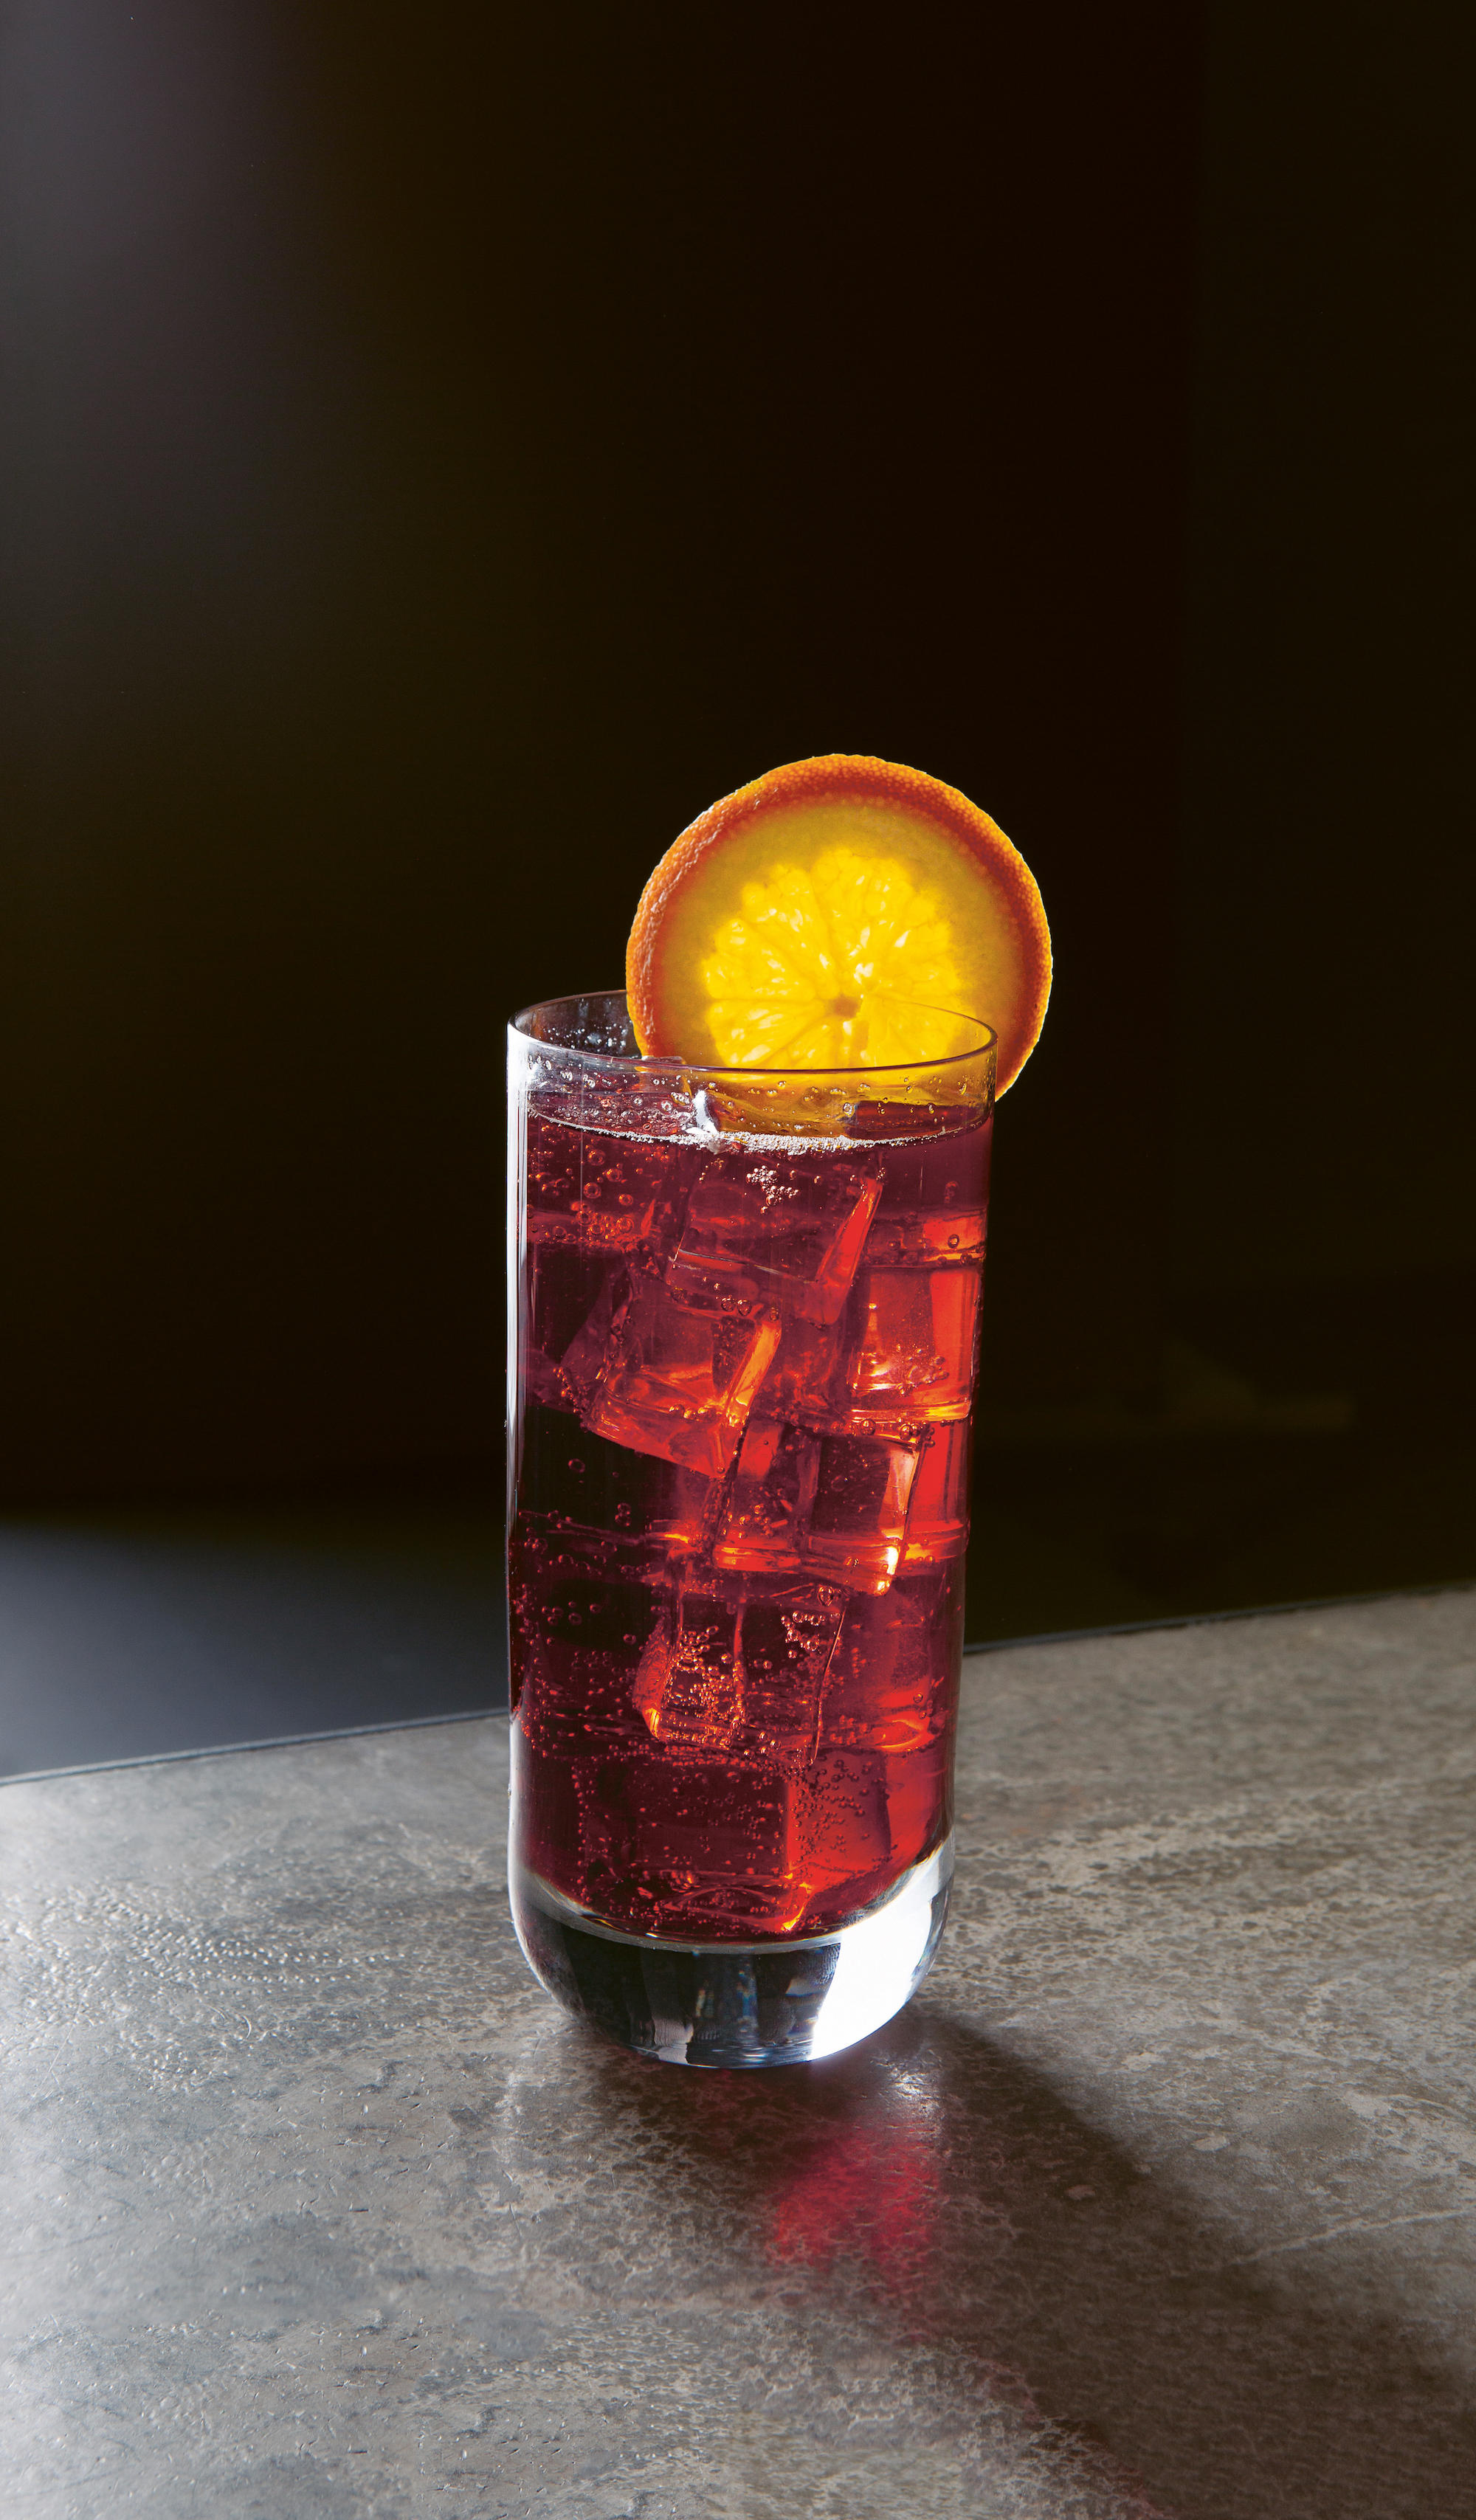 Excelsior Special - Spirited: Cocktails from Around the World